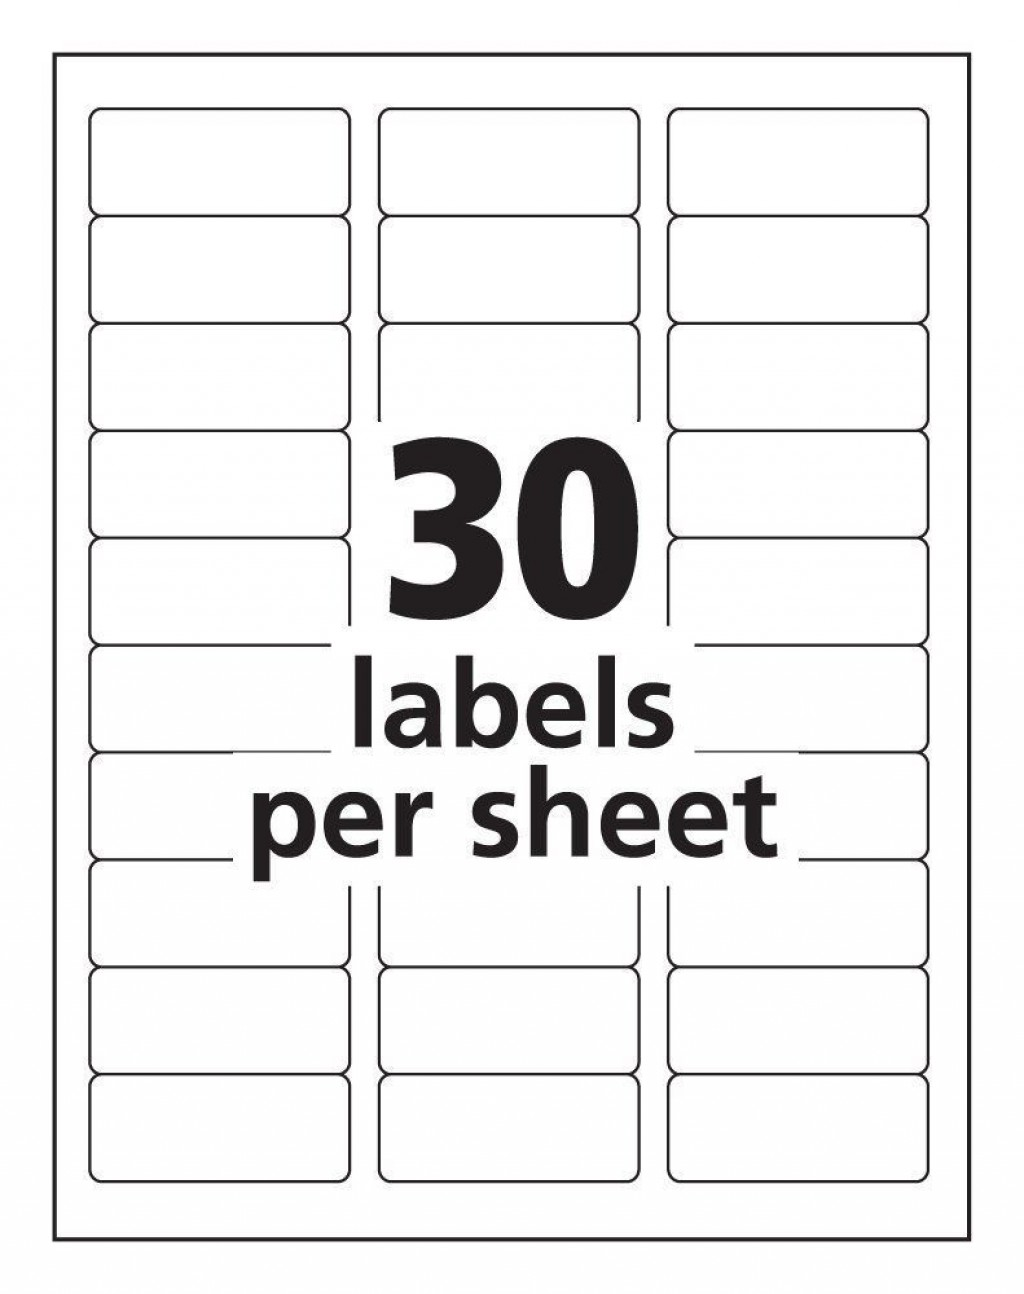 005 Amazing Microsoft Word Label Template Free High Def  Dvd Download Water BottleLarge